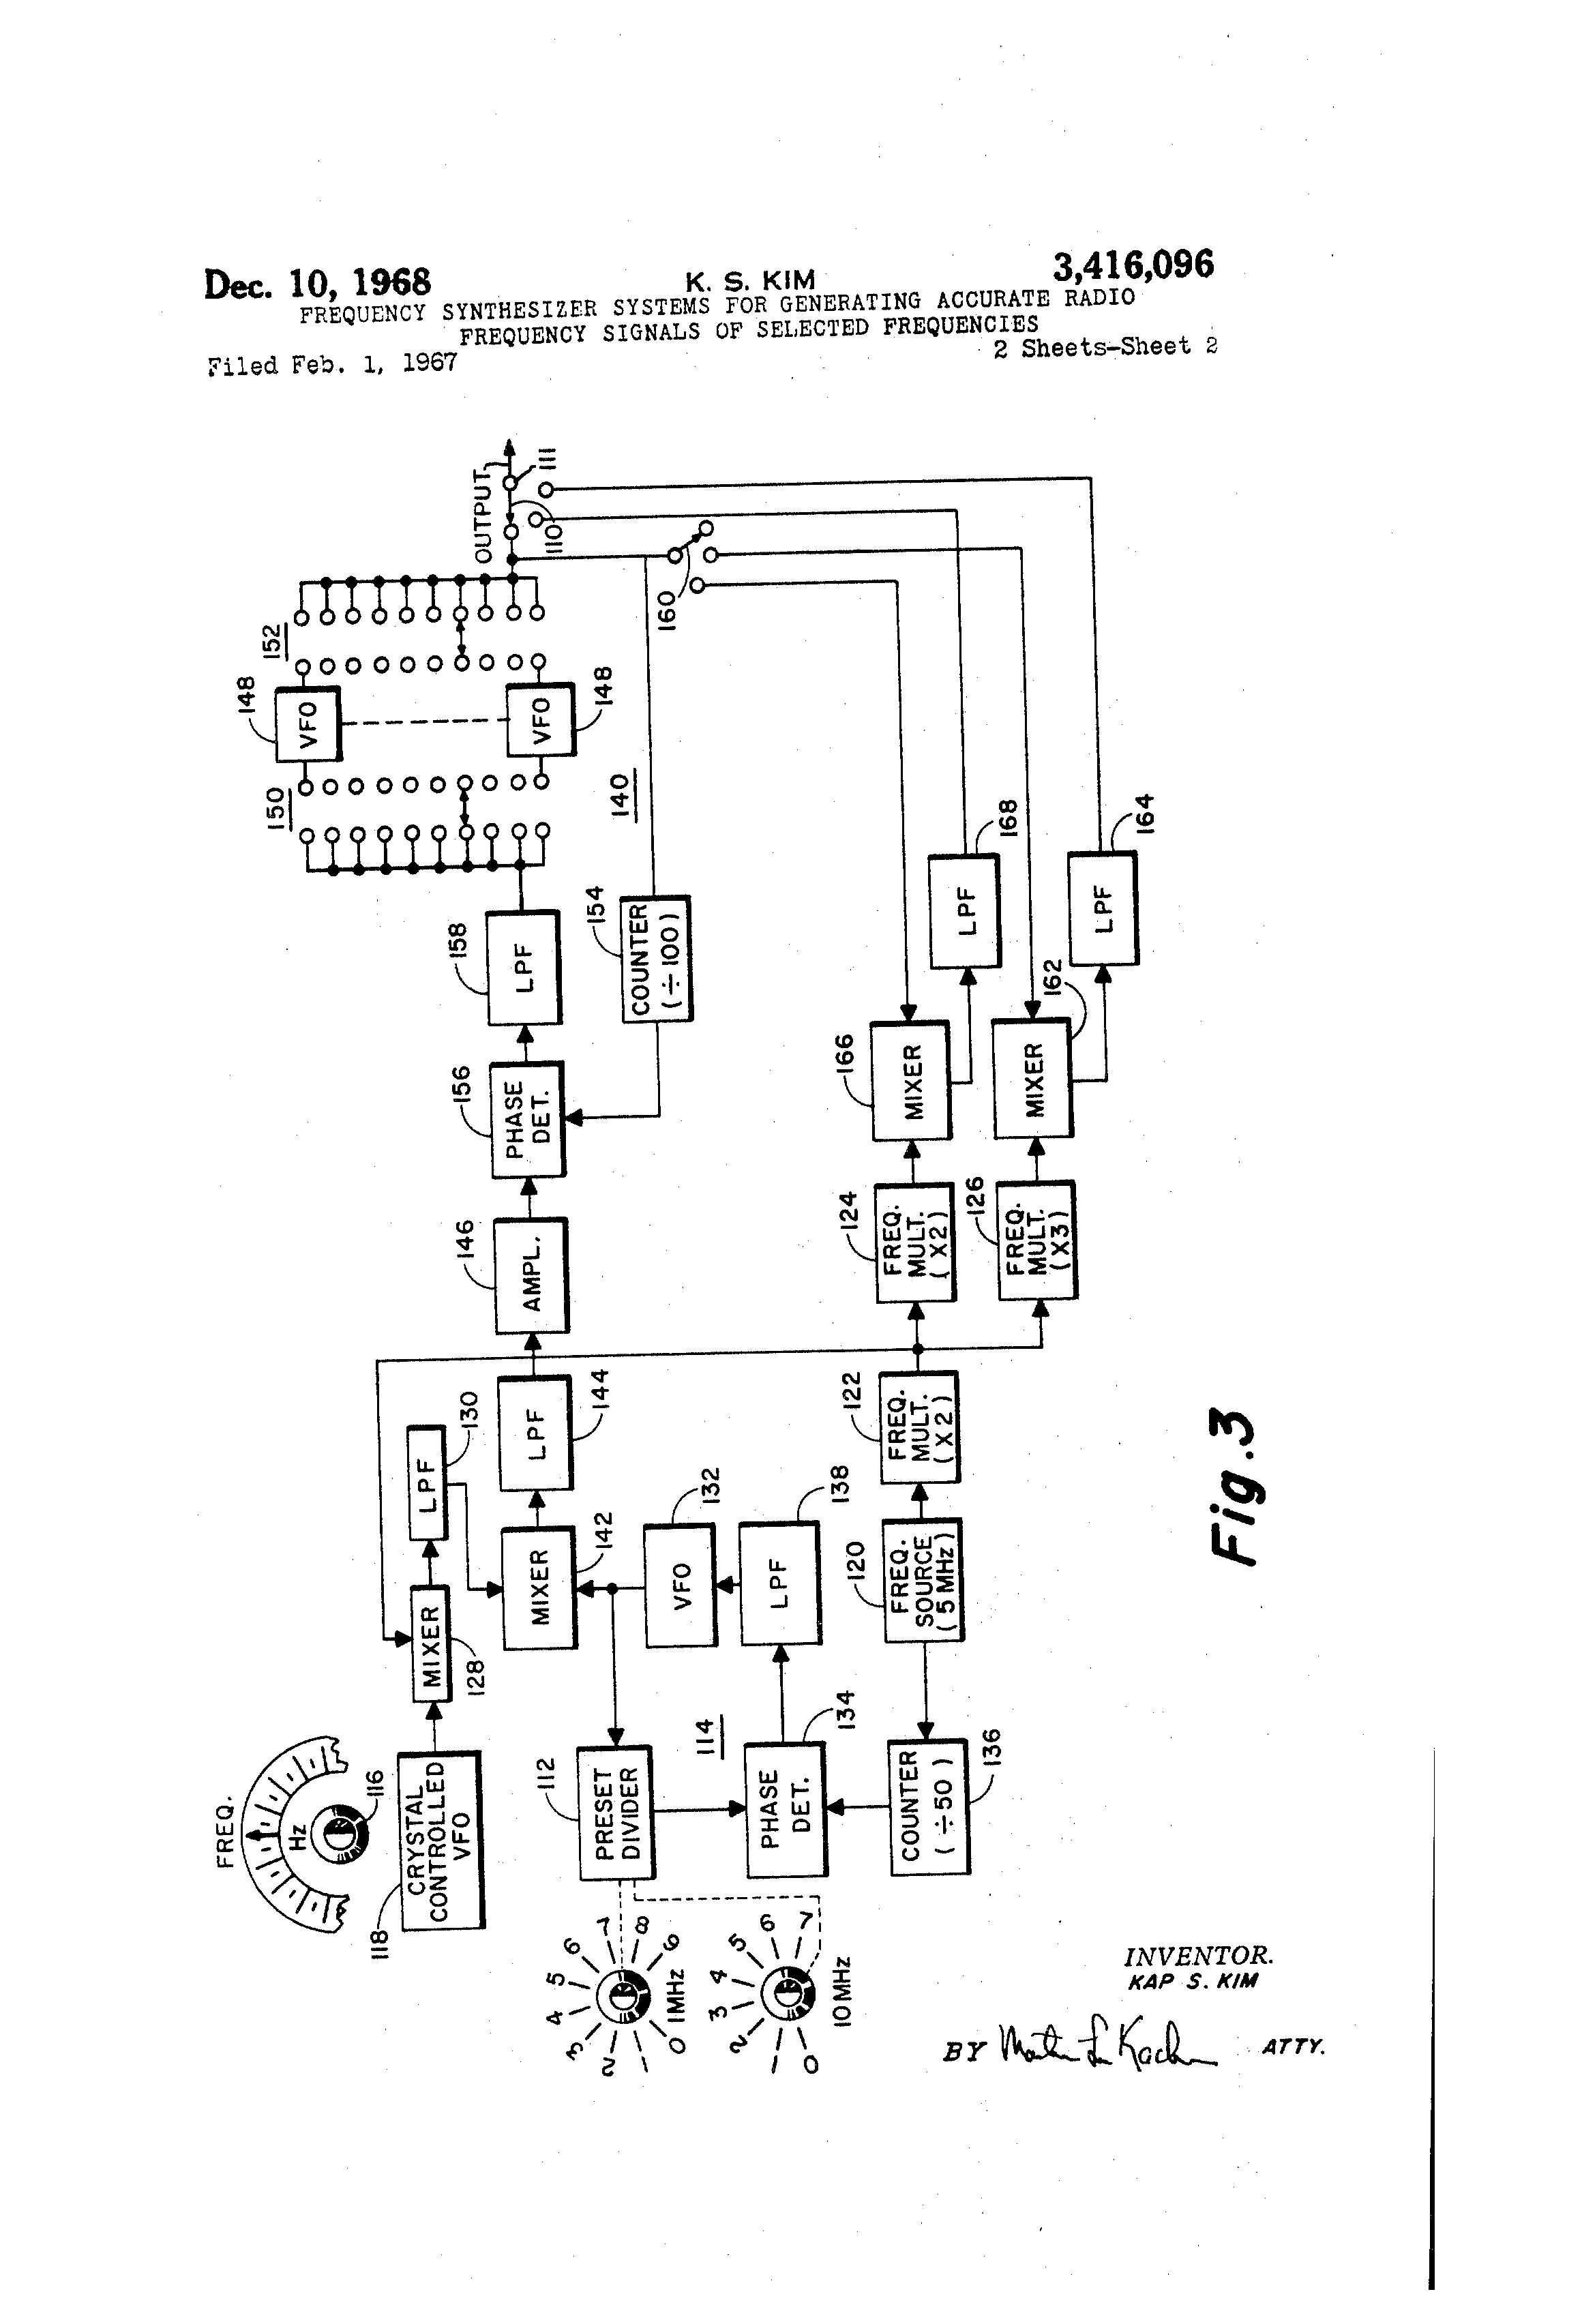 Brevet Us3416096 Frequency Synthesizer Systems For Generating 2 Mhz Standard With Dividers Patent Drawing